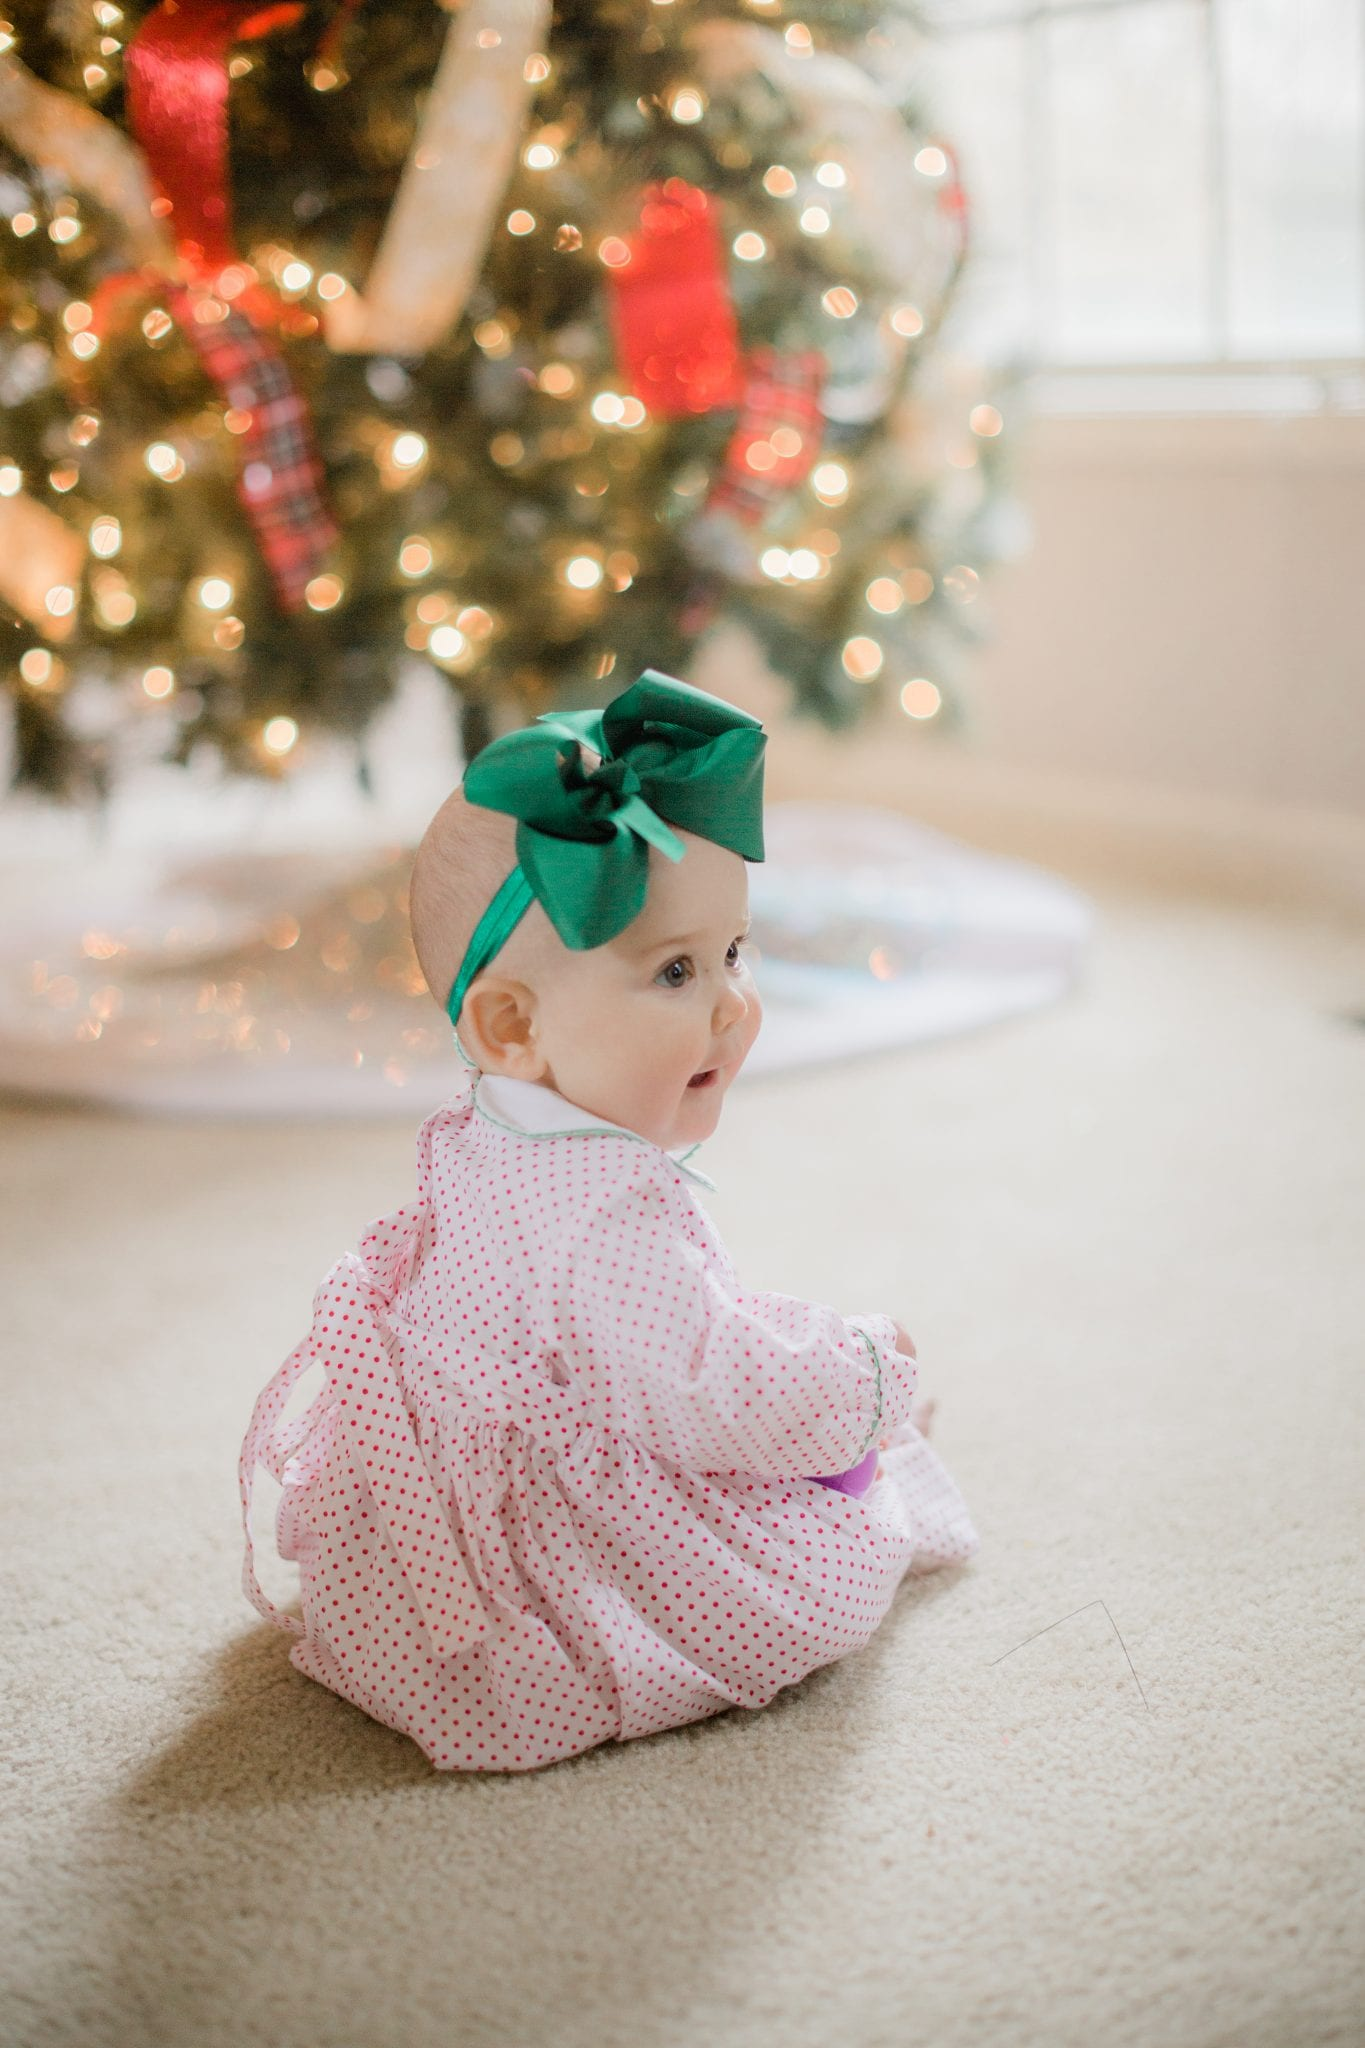 Traditions to start for Baby's First Christmas